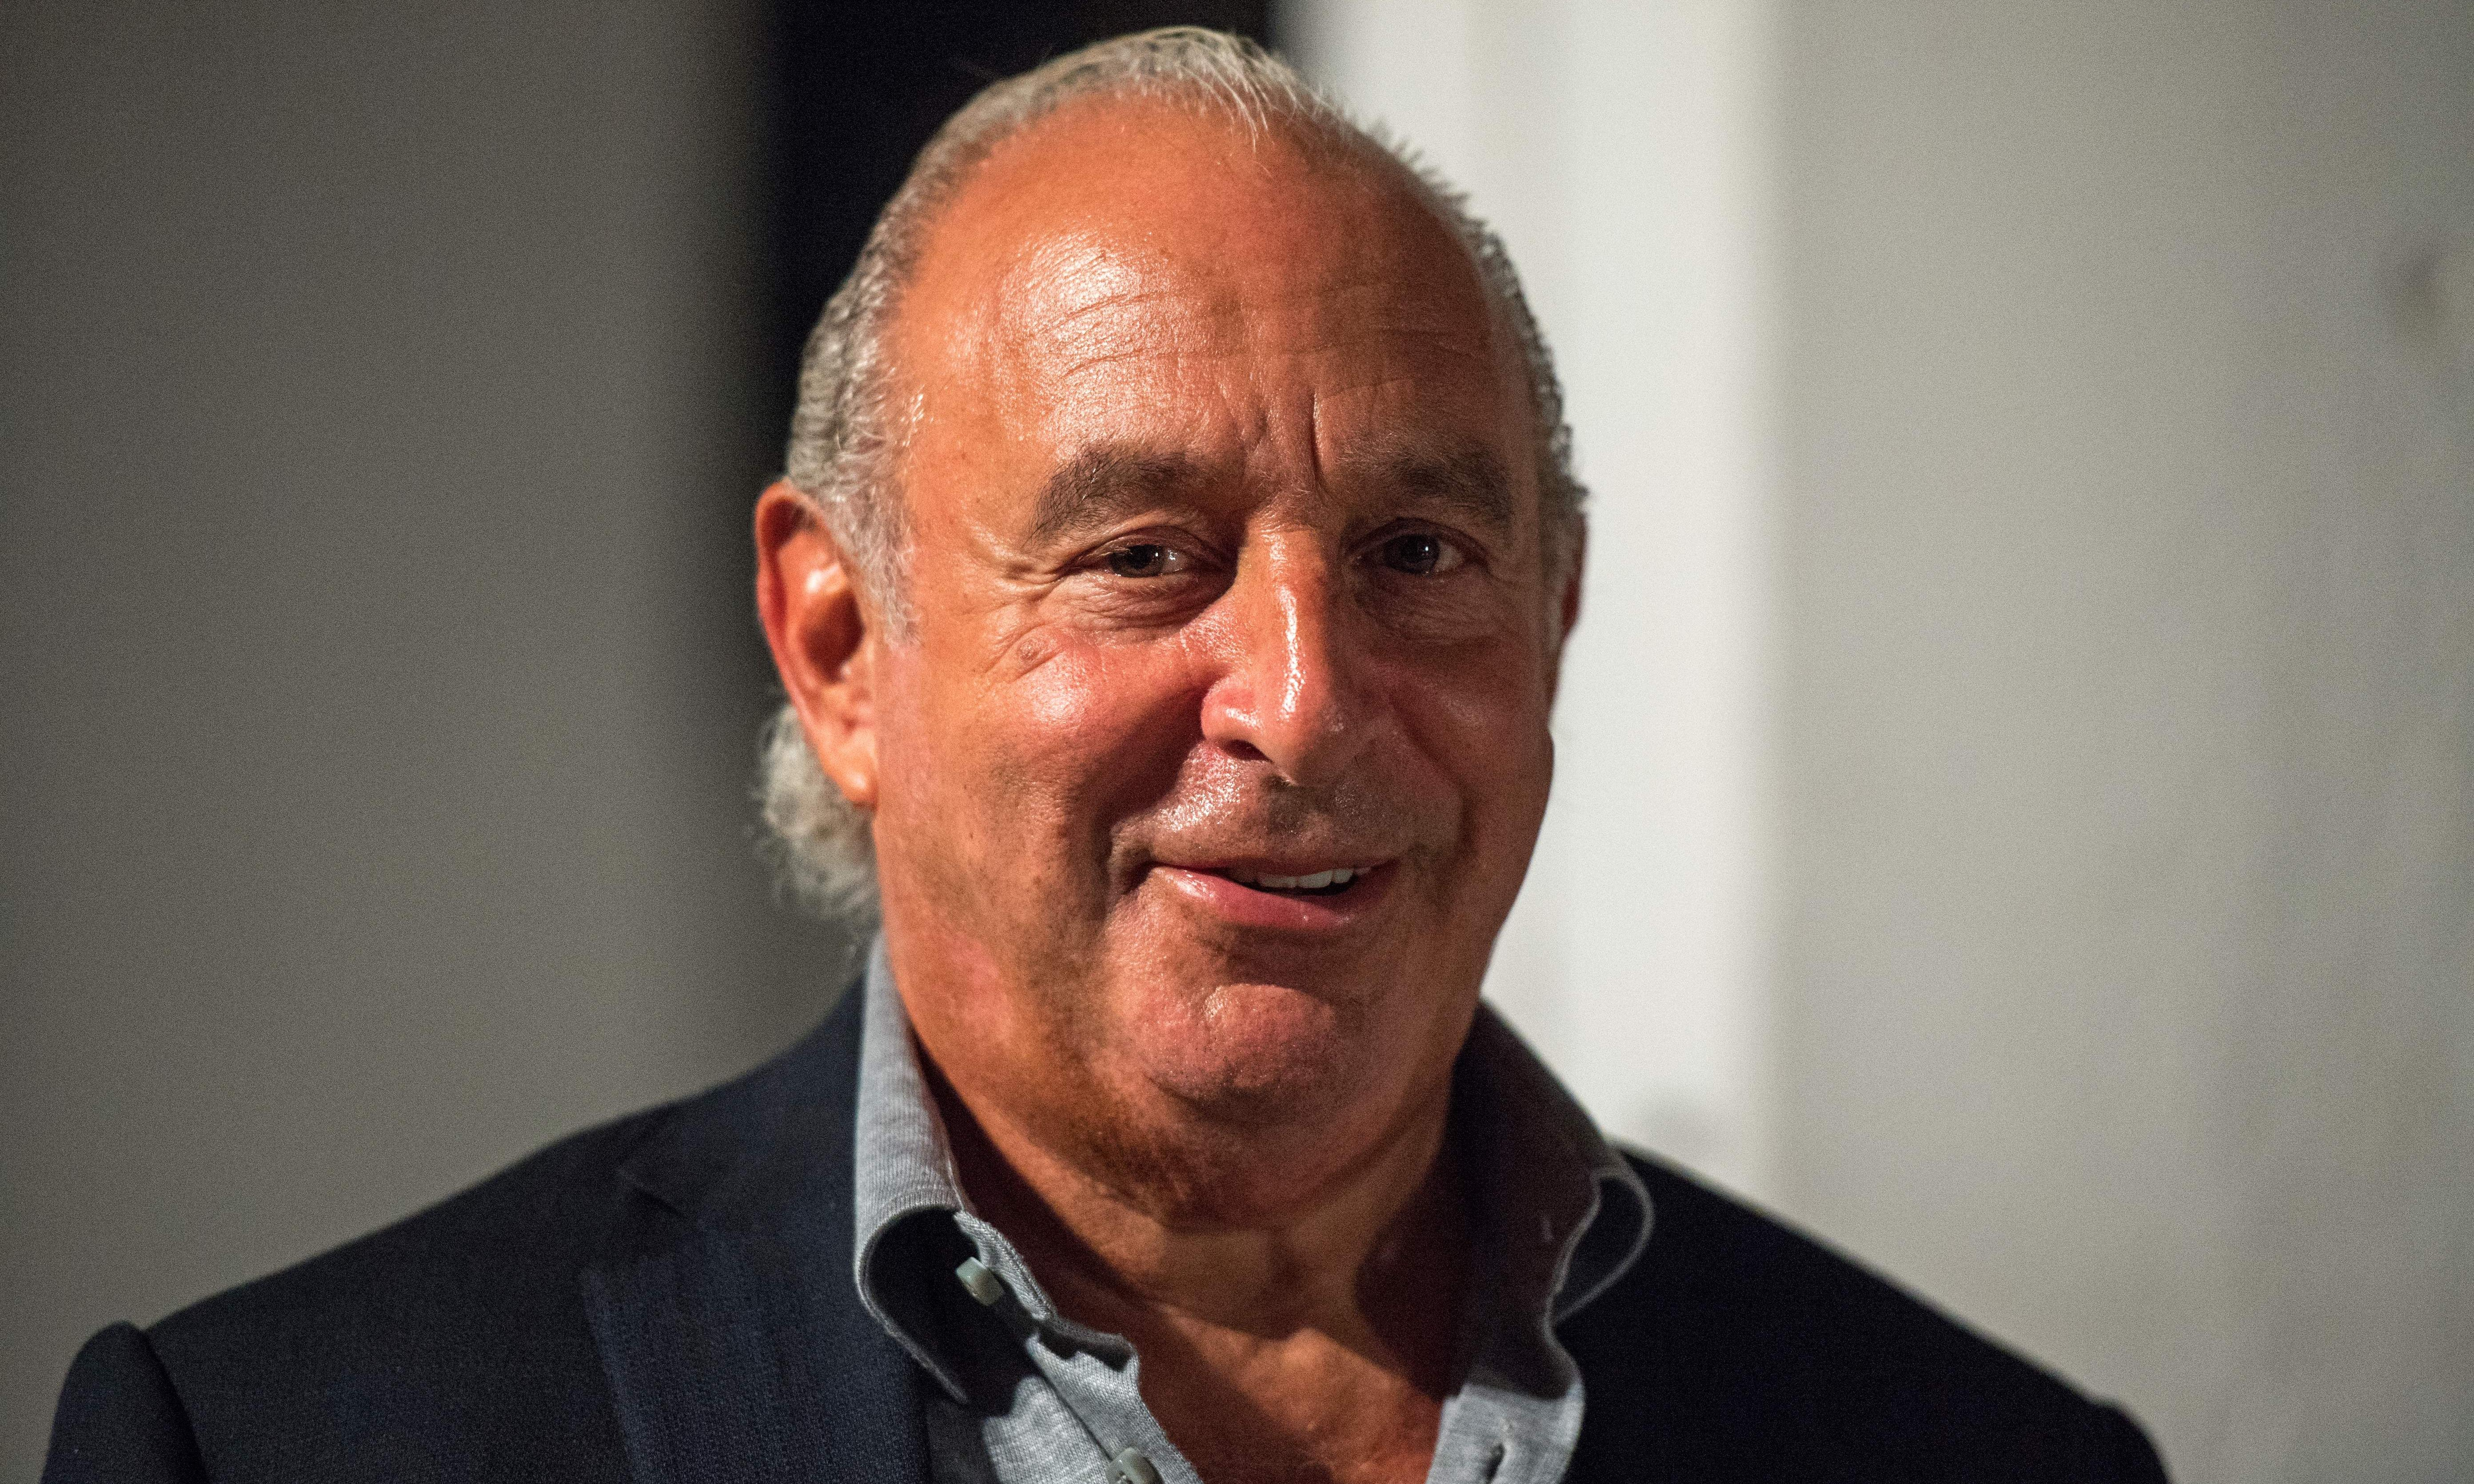 Philip Green could close overseas stores as part of Arcadia rescue